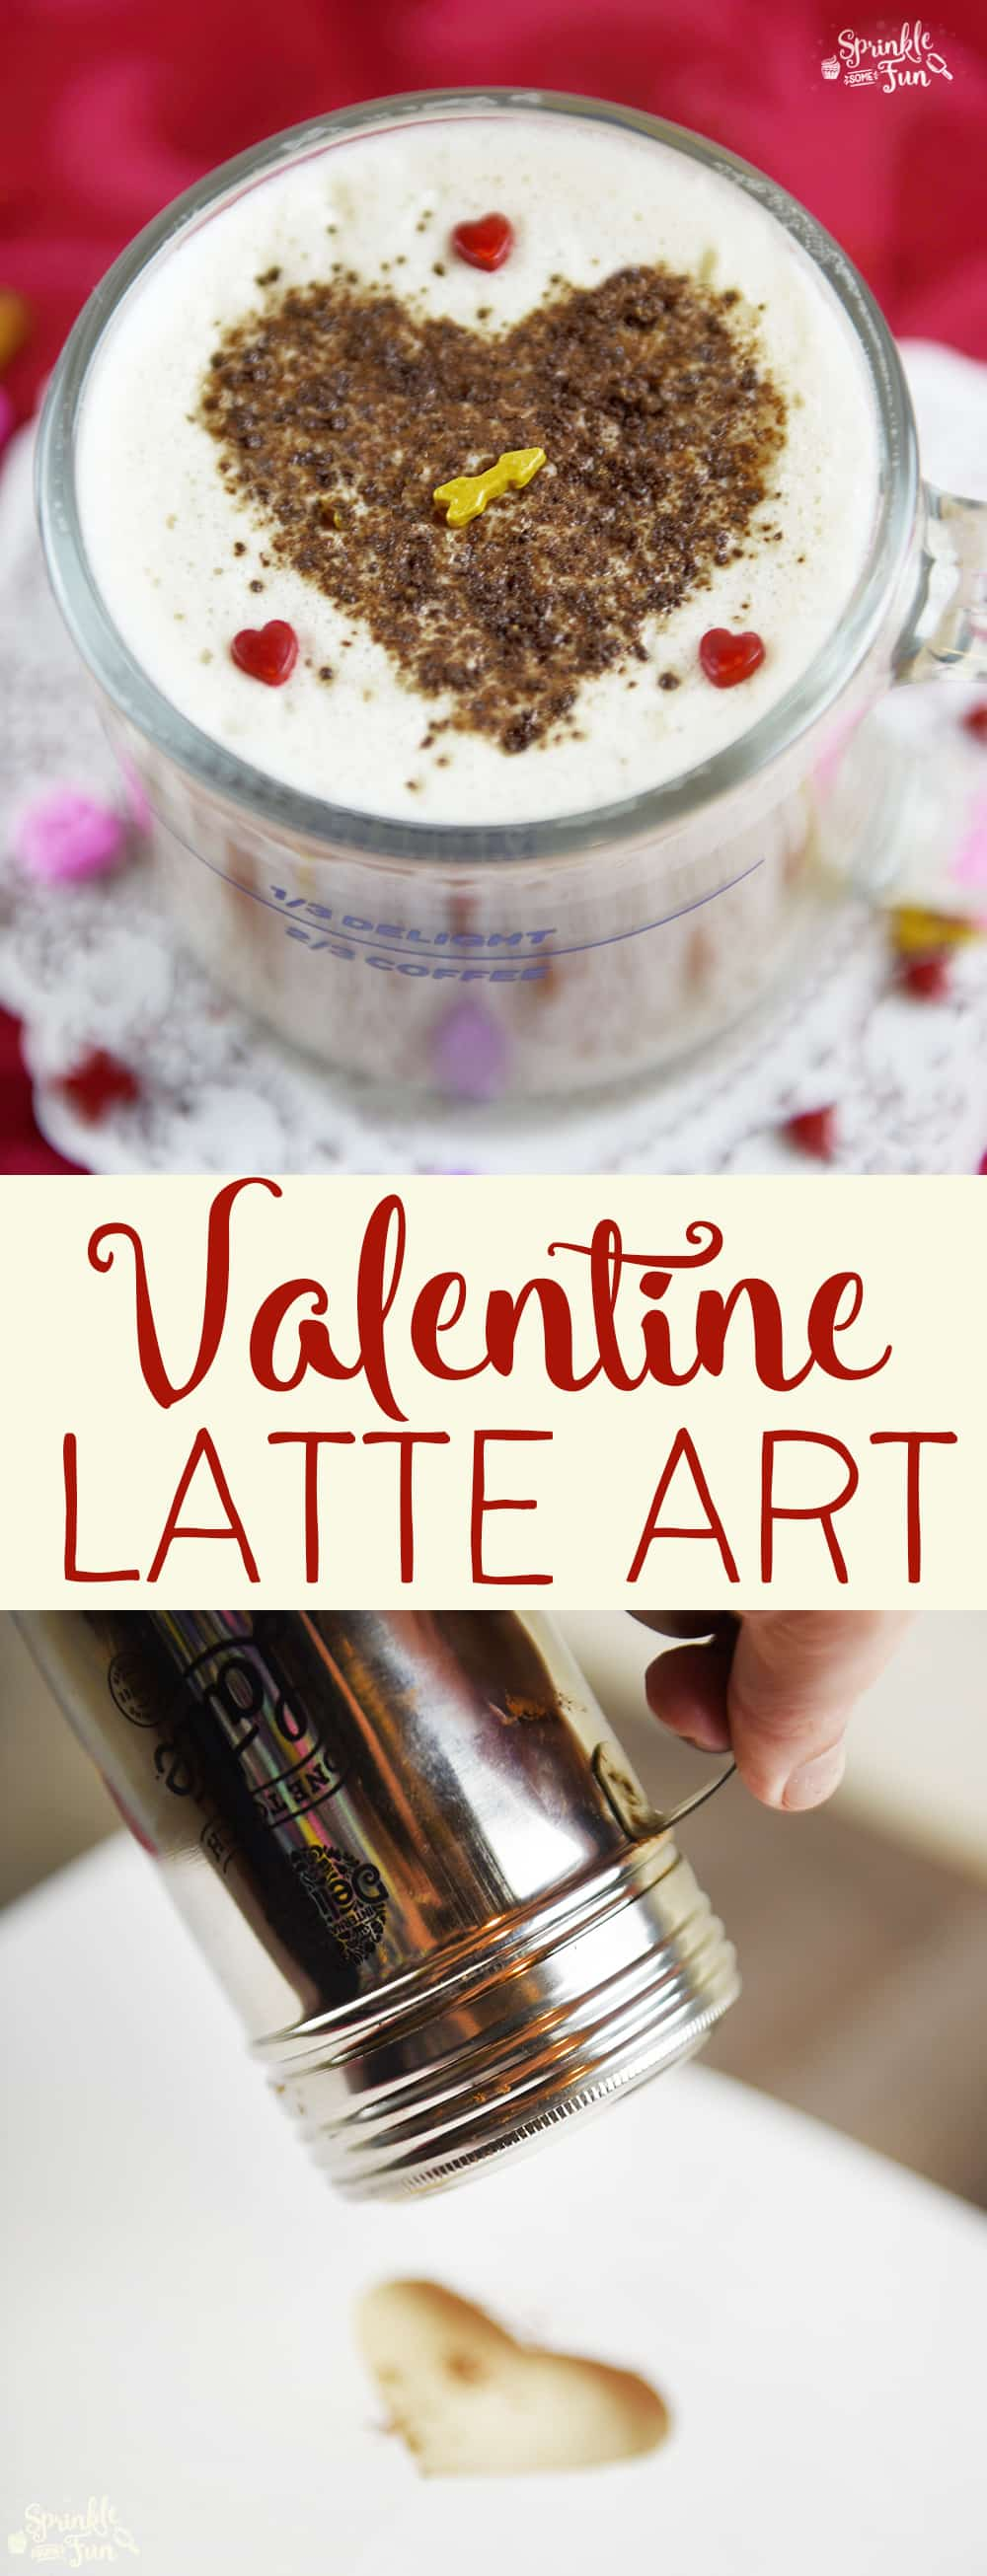 This Valentine Latte Art & Easy 3 Step Latte is perfect for any coffee lover on Valentine's Day!